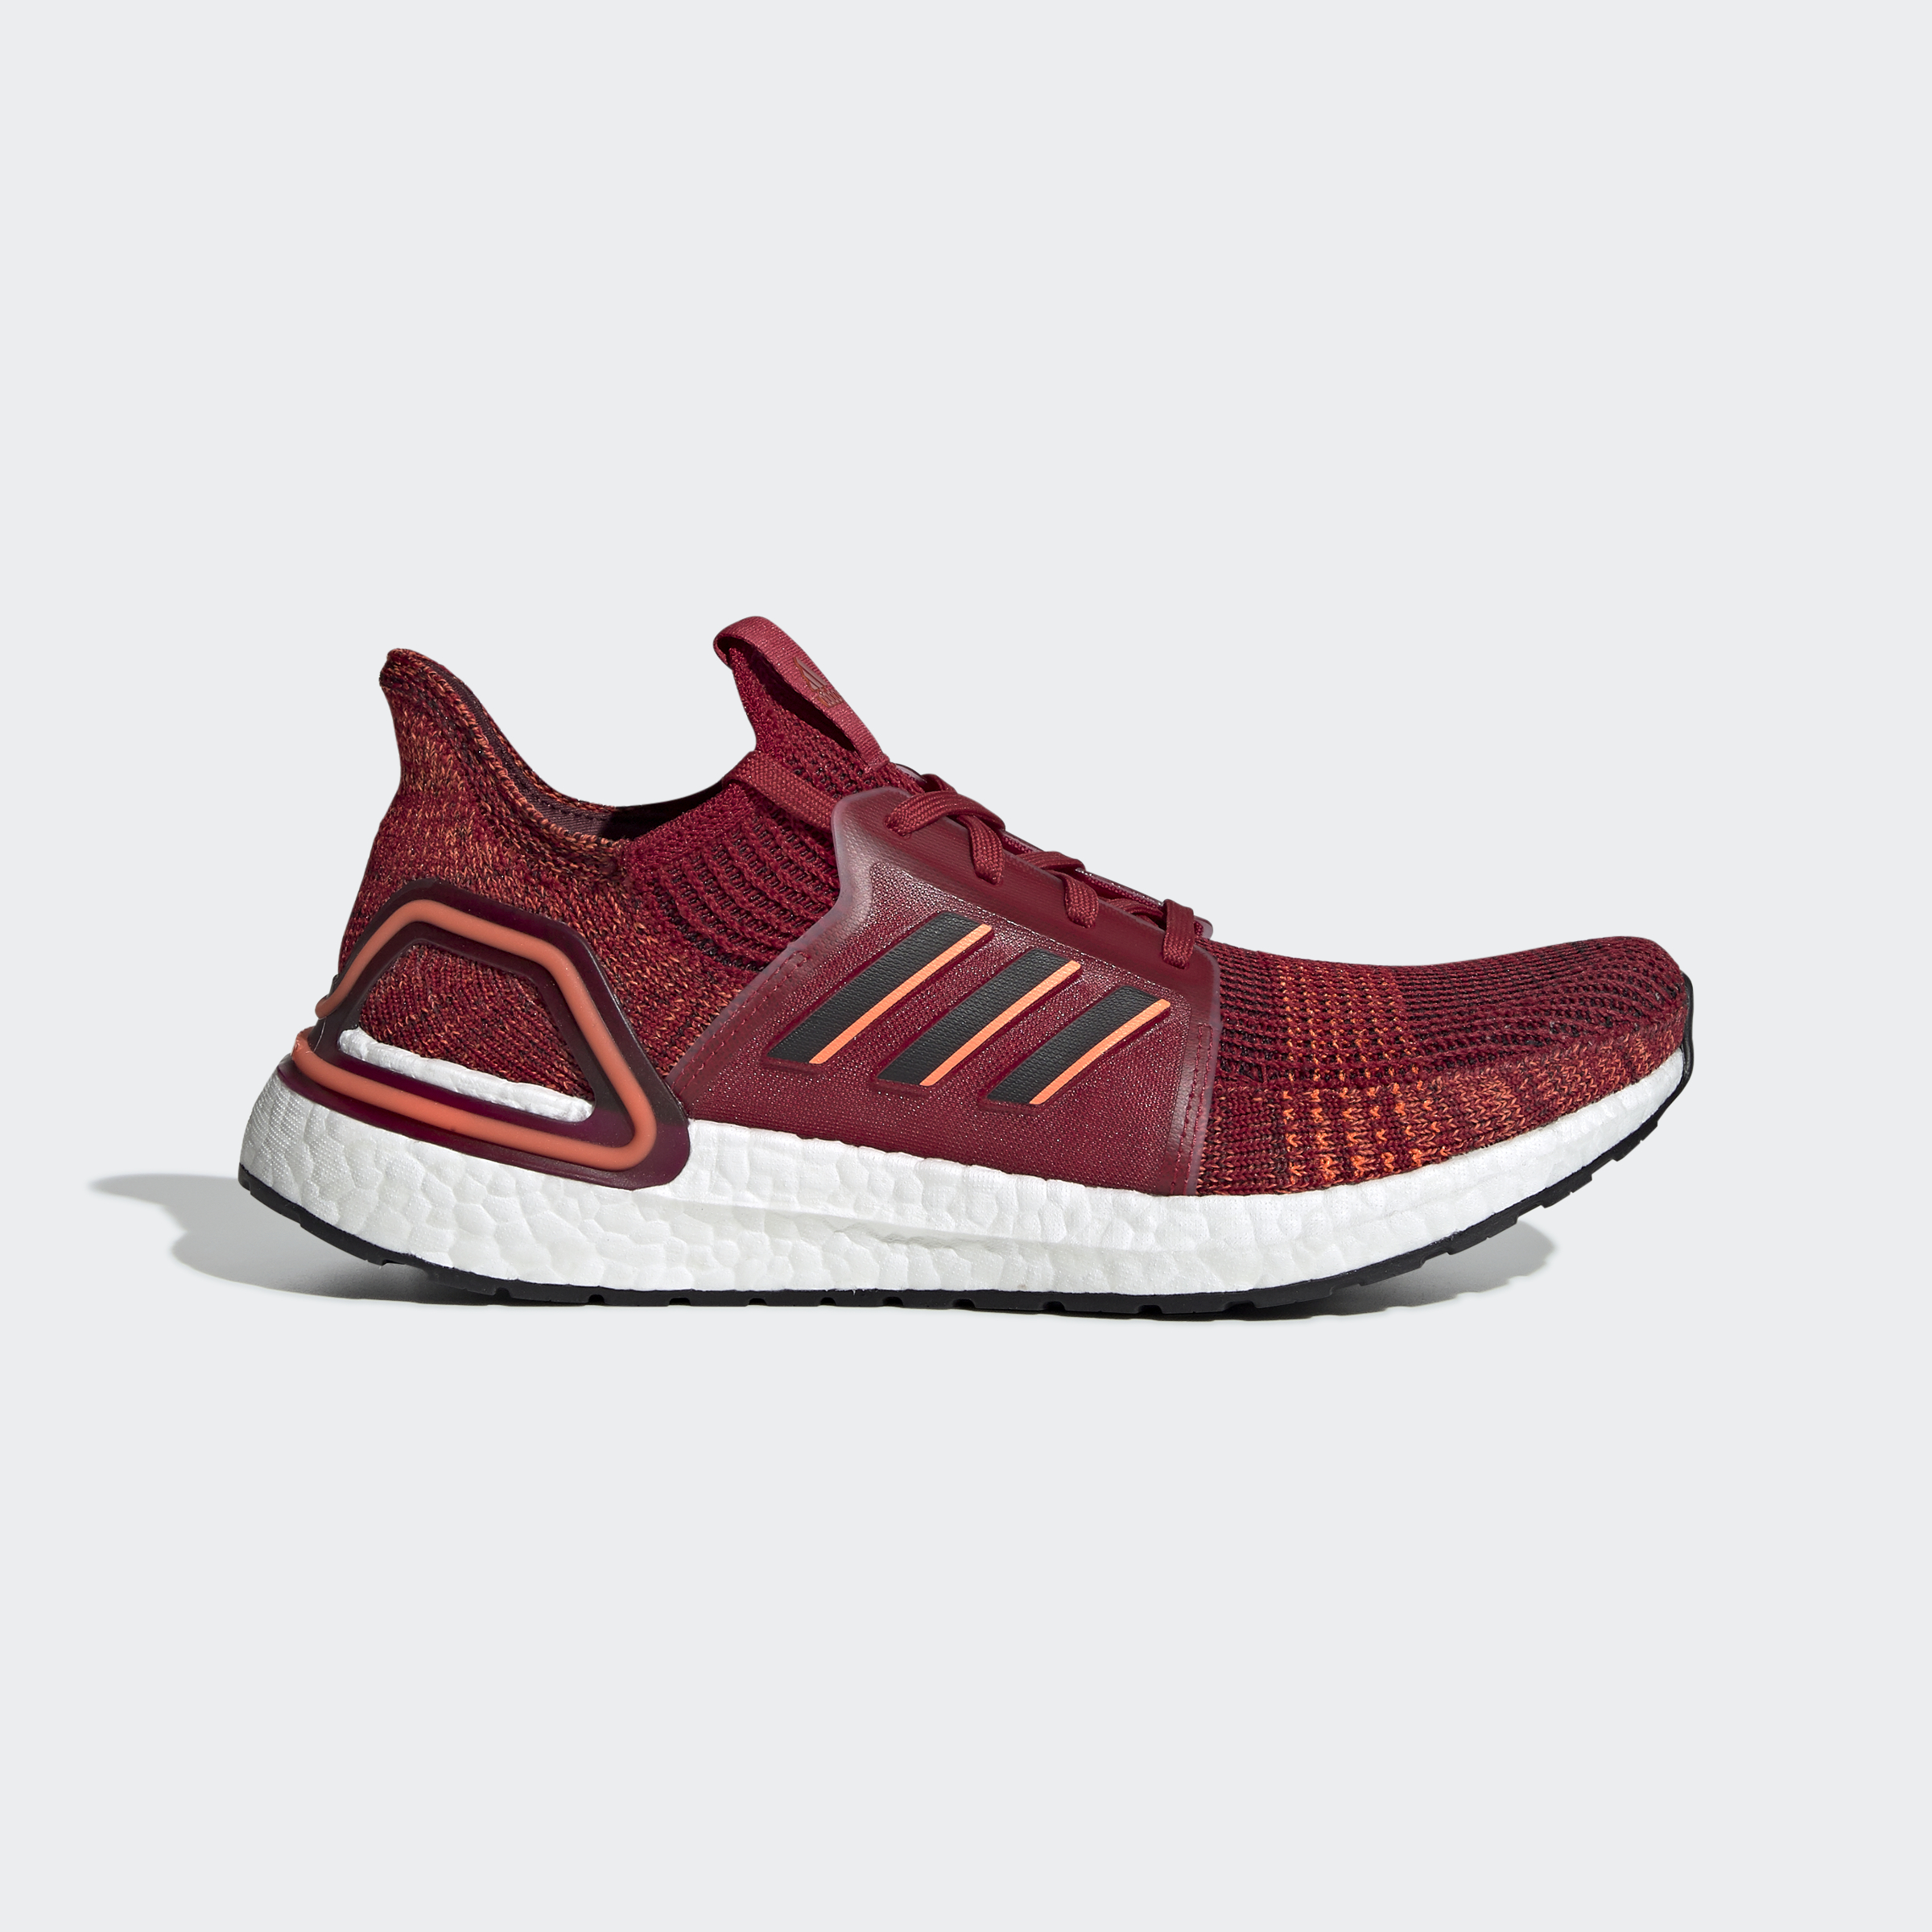 adidas-Ultraboost-19-Shoes-Athletic-amp-Sneakers thumbnail 98